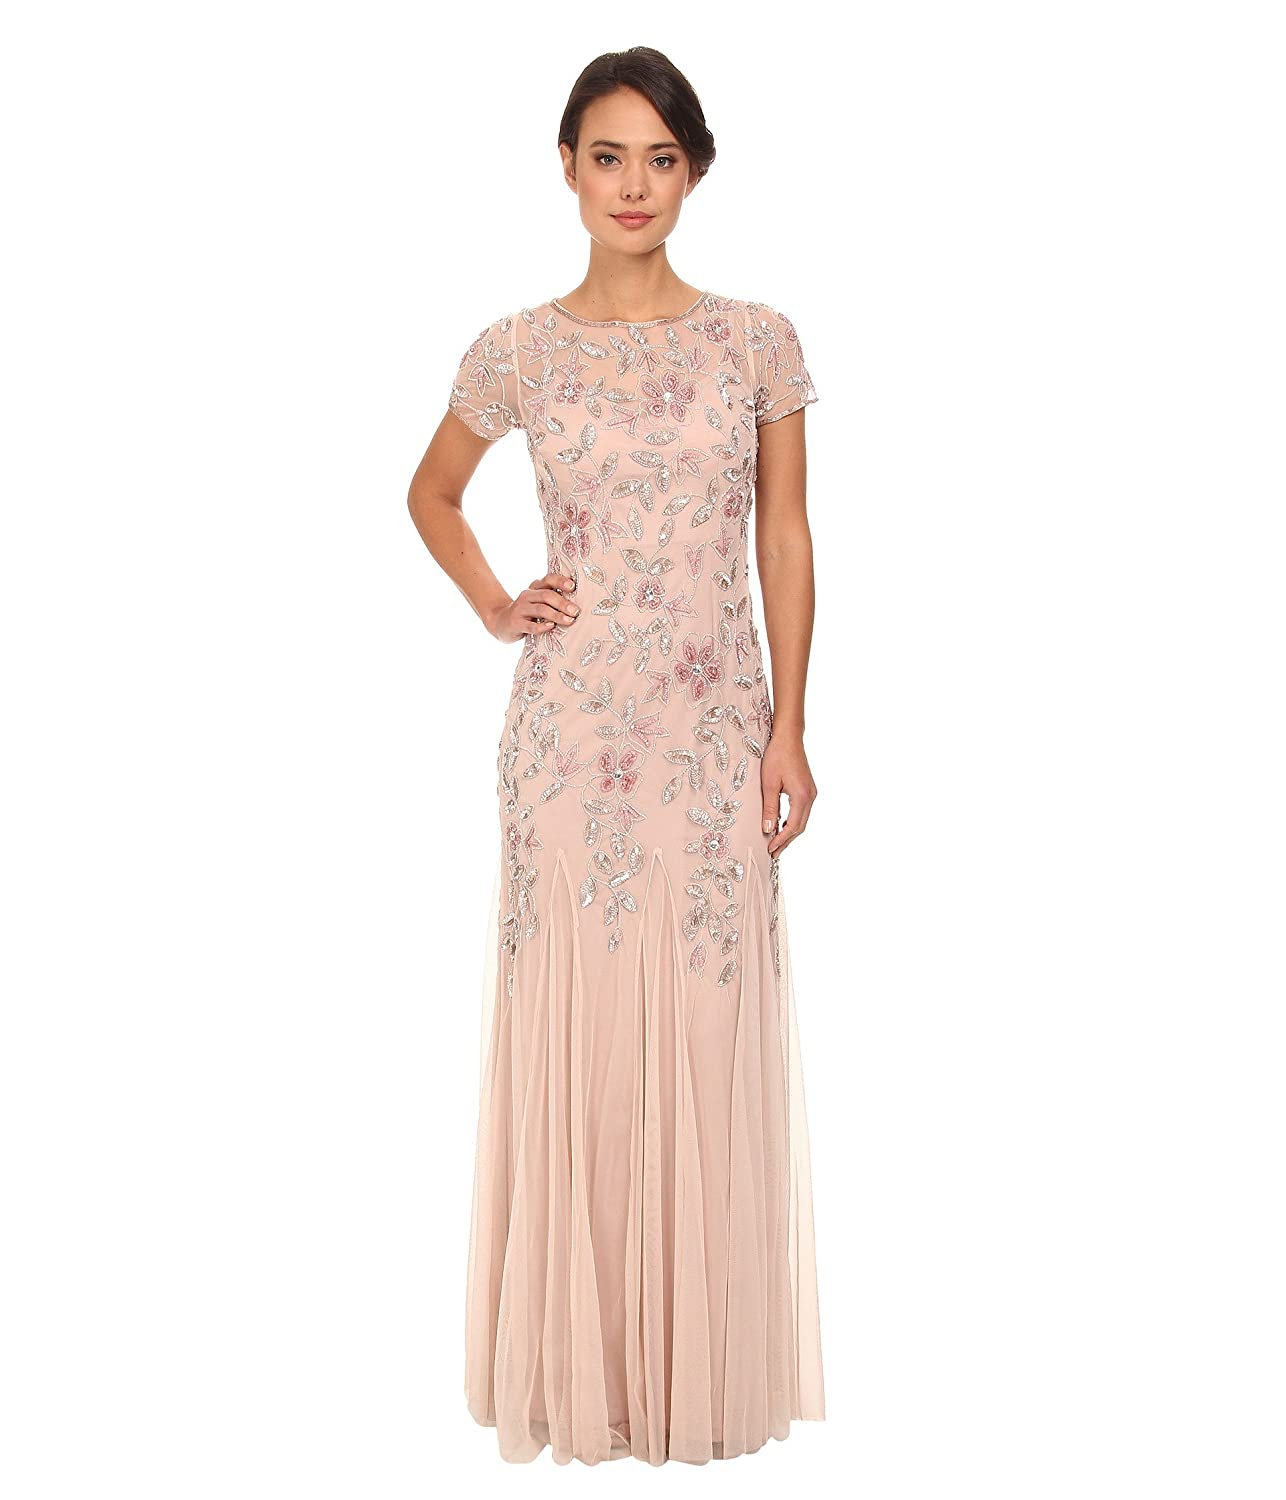 bluesh Adrianna Papell Women's Floral Beaded Godet Gown